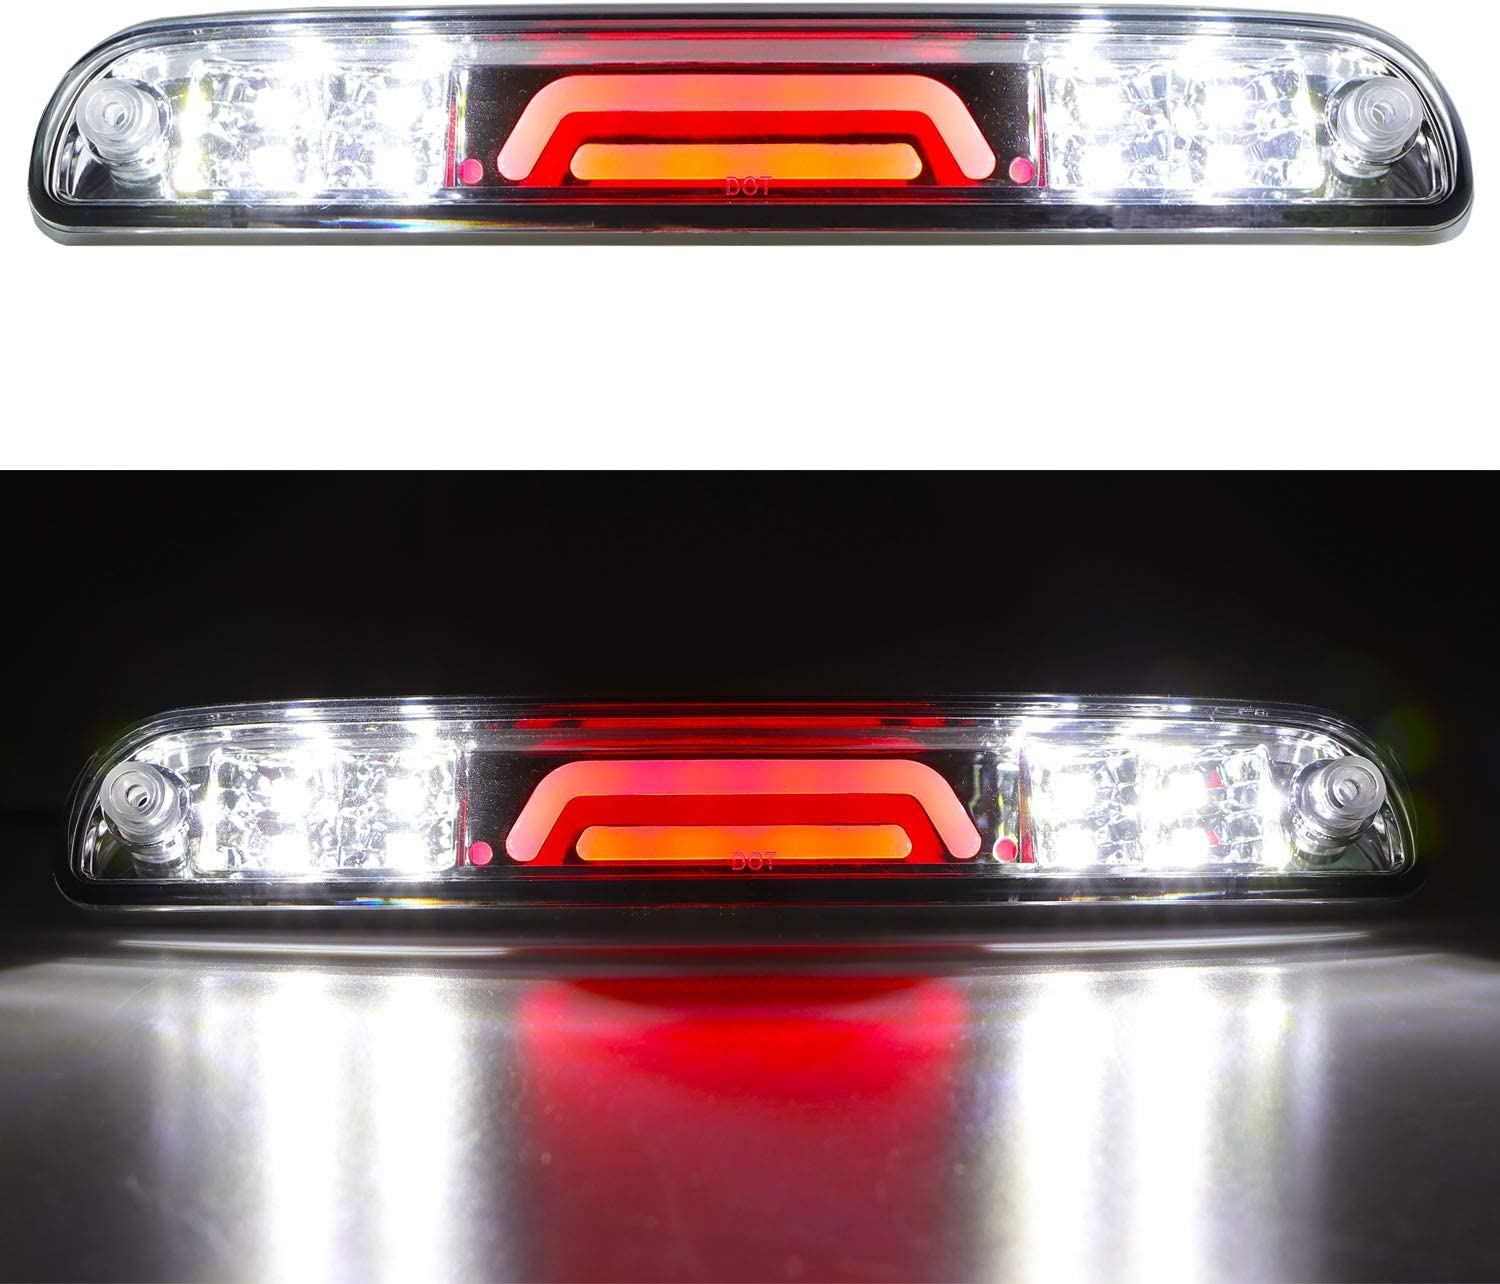 F-550 Super Duty 99-16 Mazda B-Series 94-10 F-350 Third 3rd Brake Light Cargo Light High Mount Stop Tail Light Replacement for Ford F-250 F-450